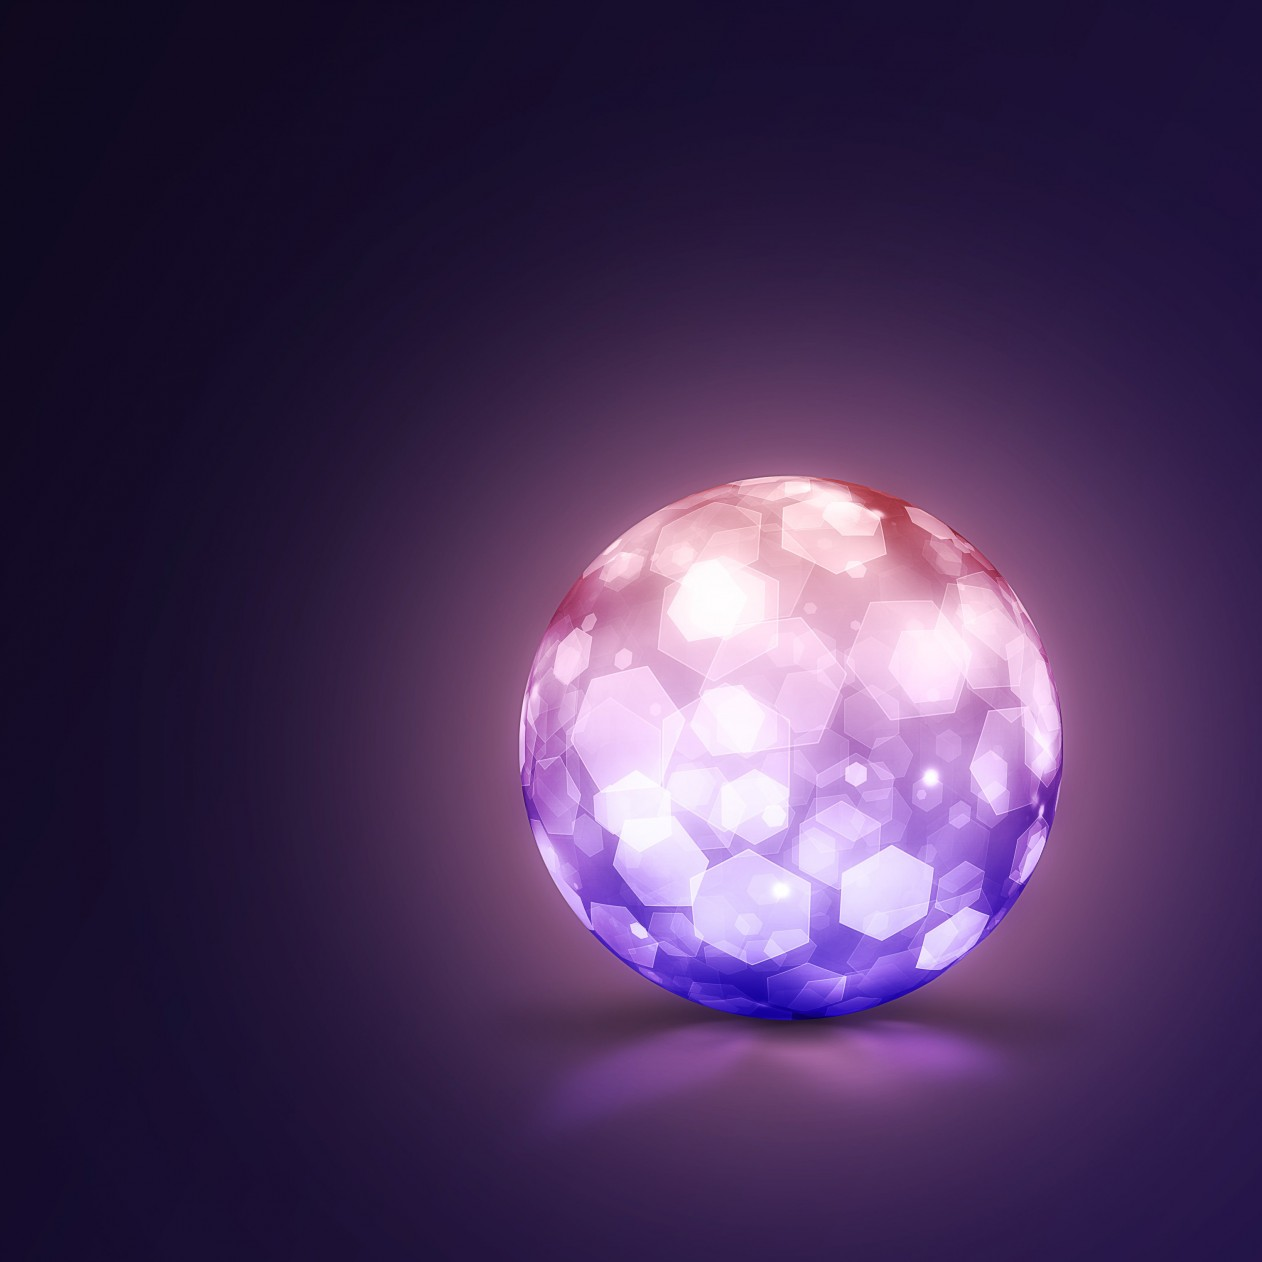 Lightning Ball Wallpaper for Apple iPad mini